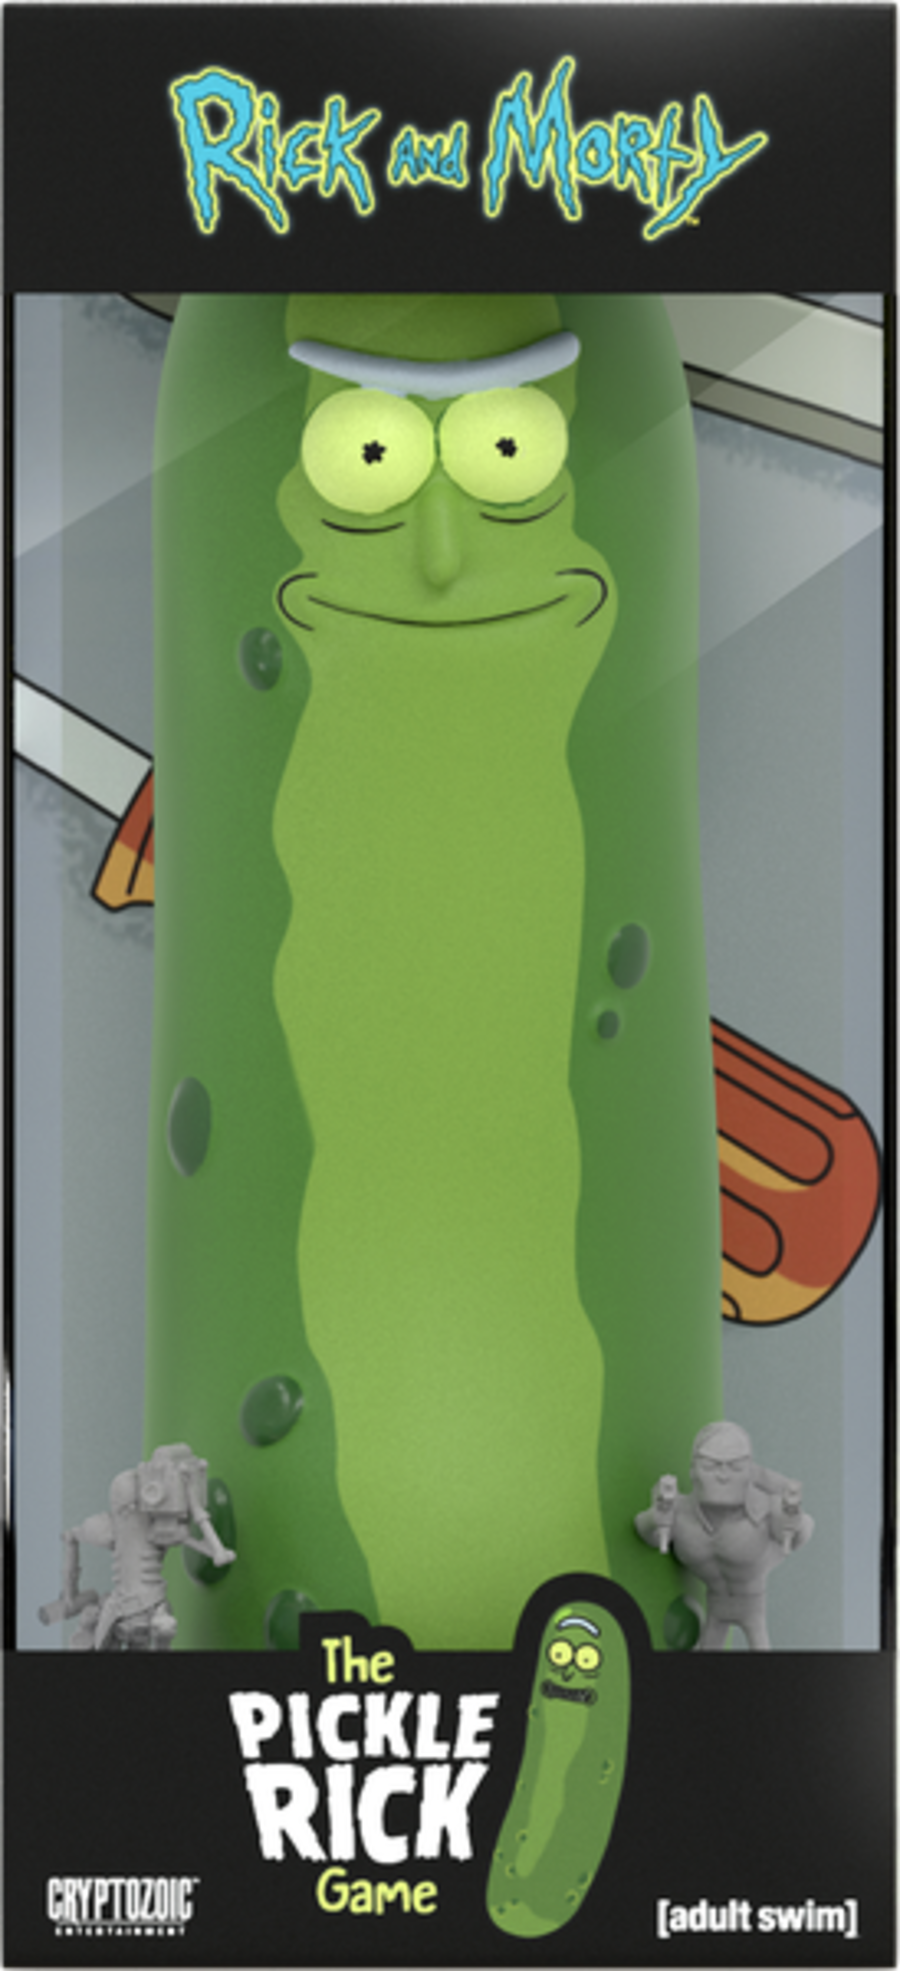 Rick and Morty The Pickle Rick